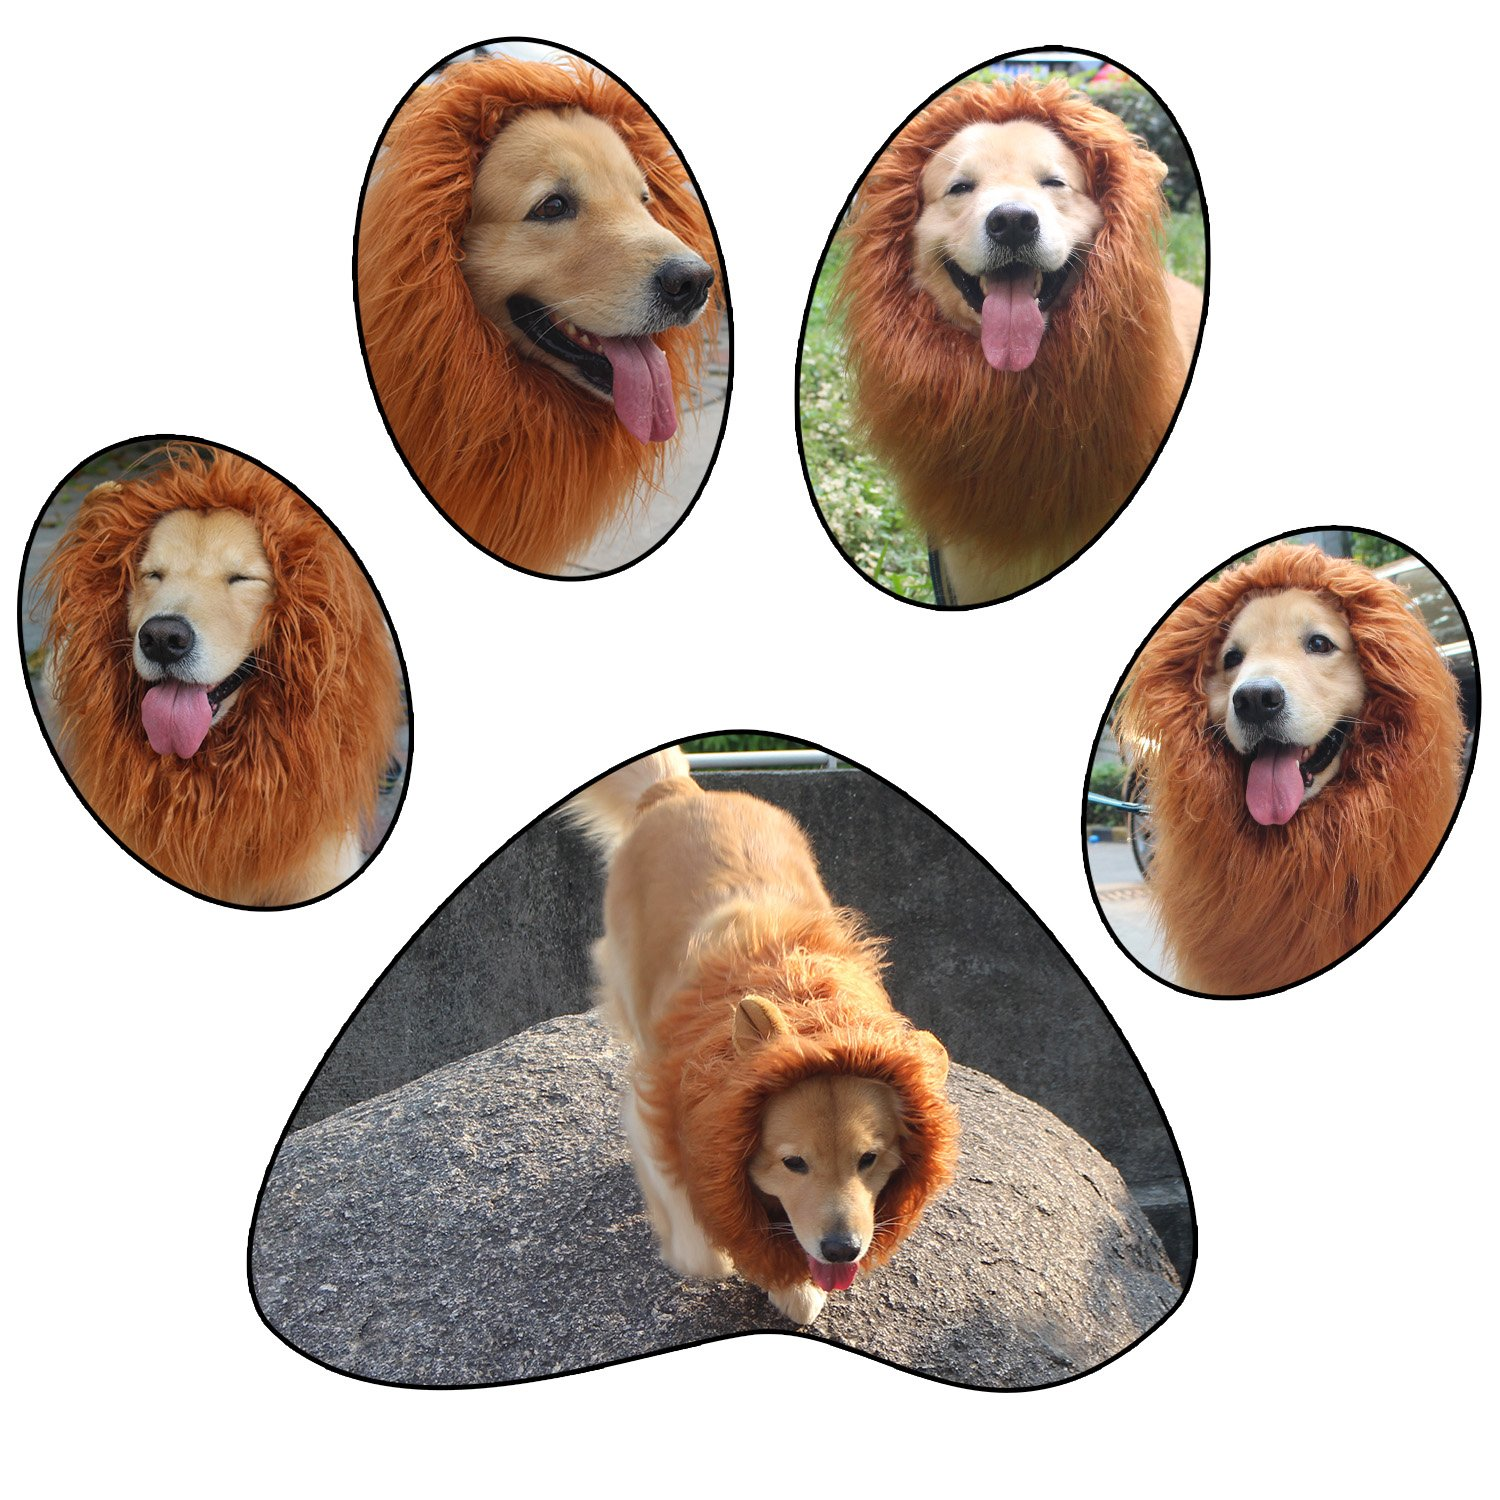 RWM ICCKER Lion Mane for Dog - Halloween Dog Costume Large Size - Hilarious Realistic & Funny Majestic Looking Hoods with Ear and Tails - Great Pet Gift Choice for Christmas,Pet Birthday Party by RWM (Image #7)